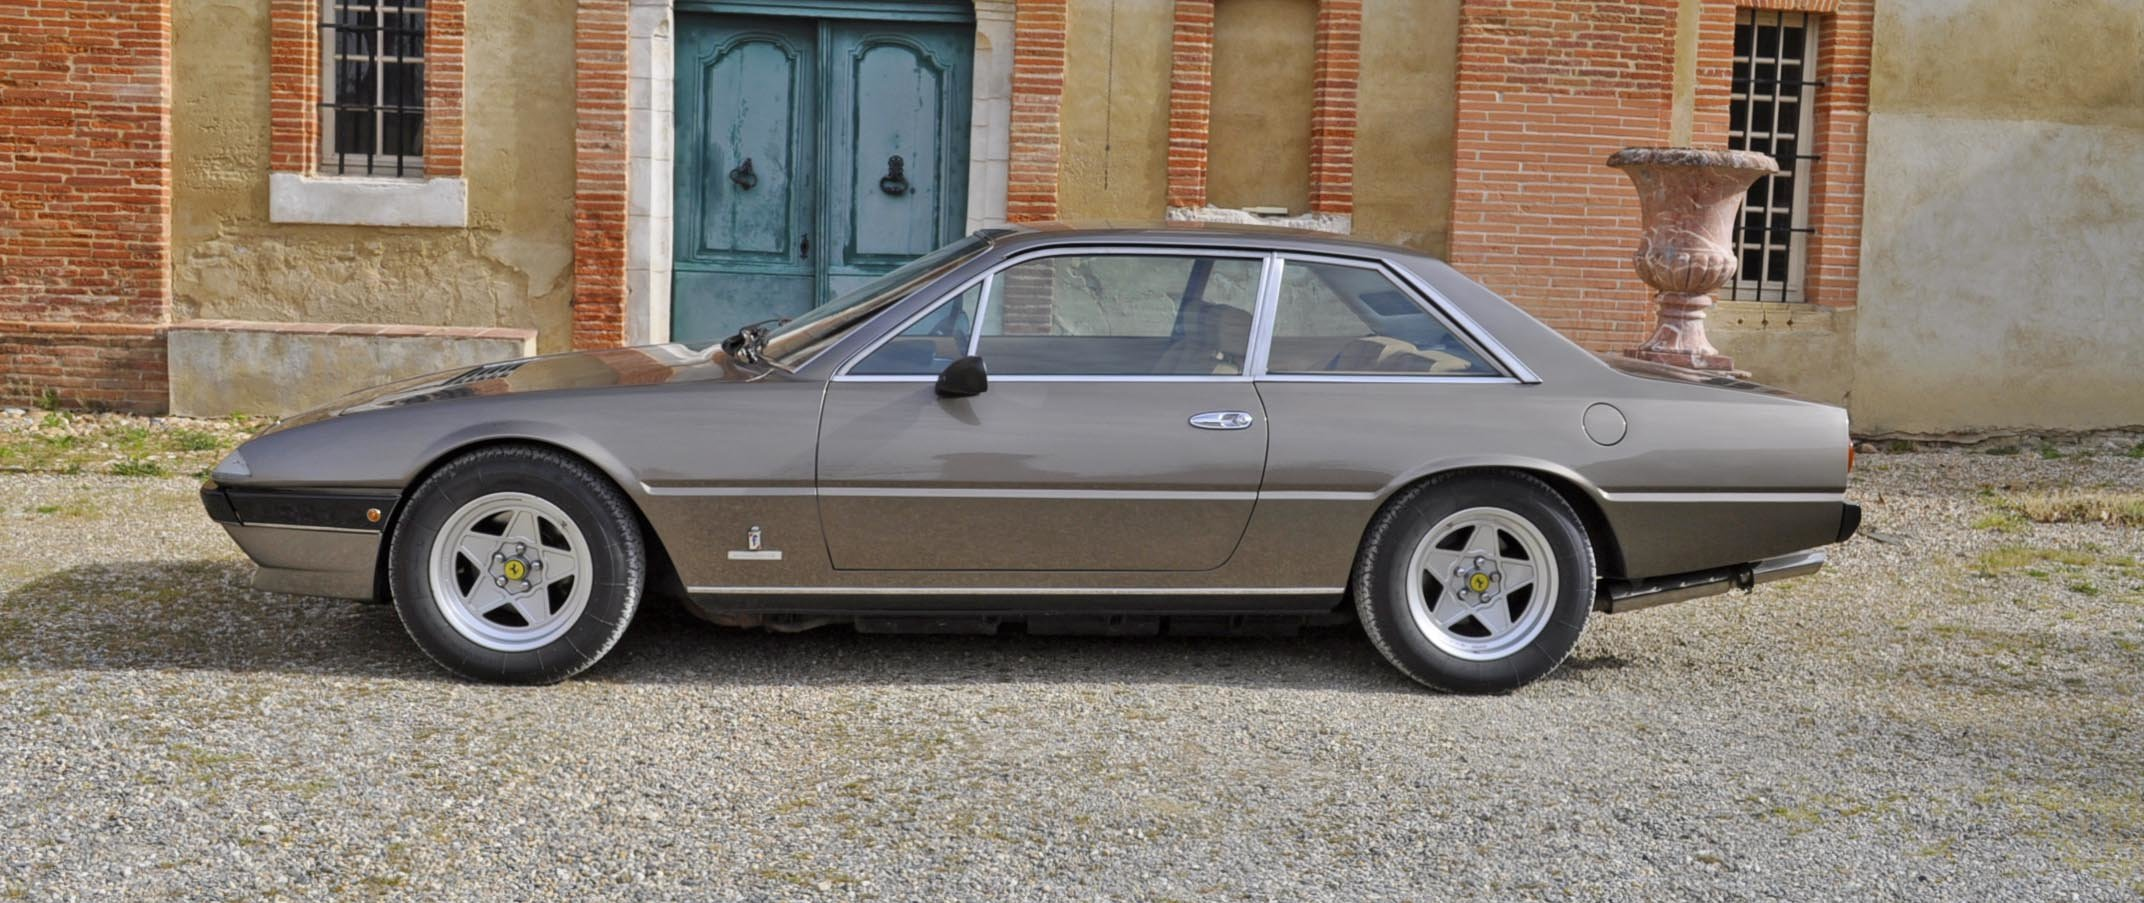 1983 FERRARI 400I  For Sale by Auction (picture 1 of 6)